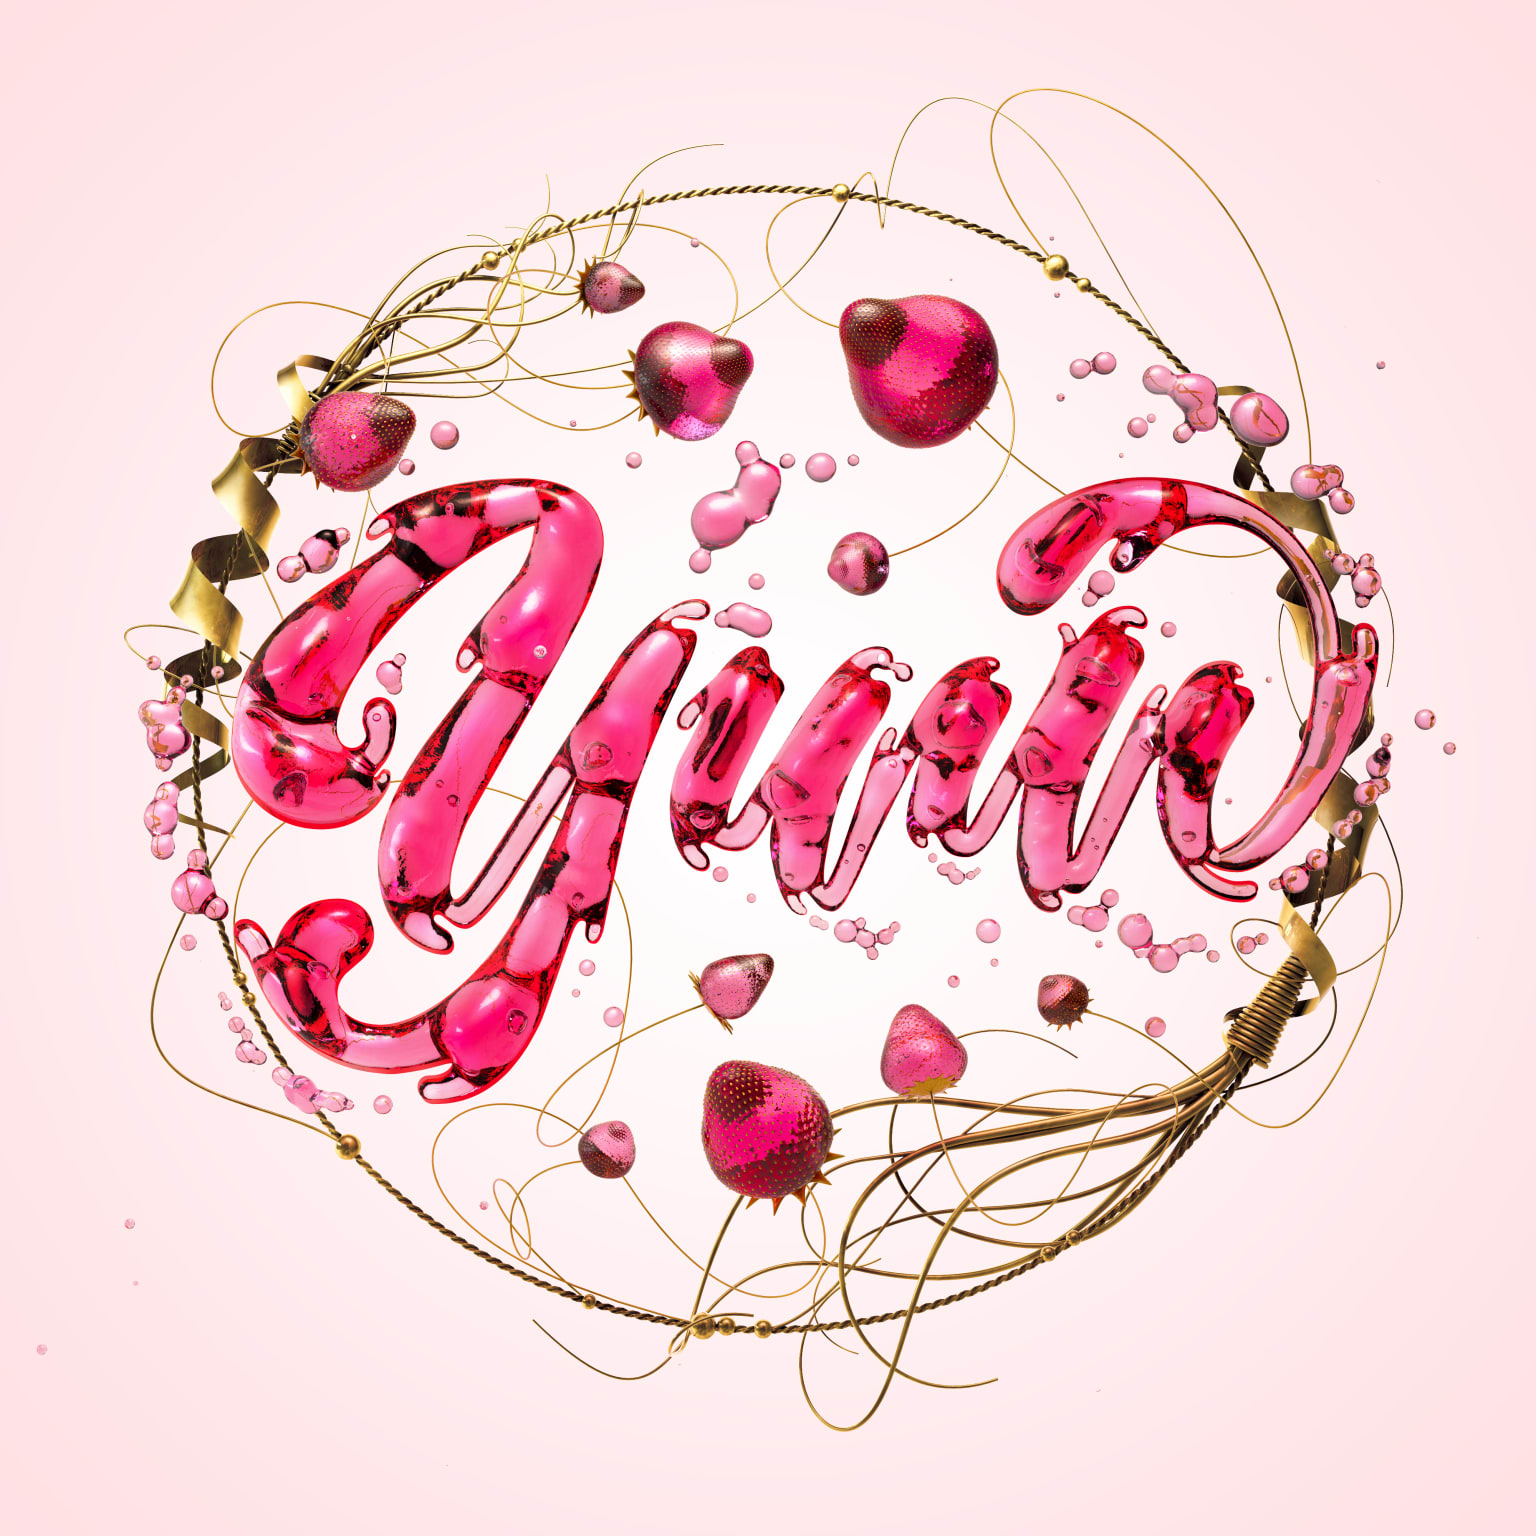 Jelly Lettering study